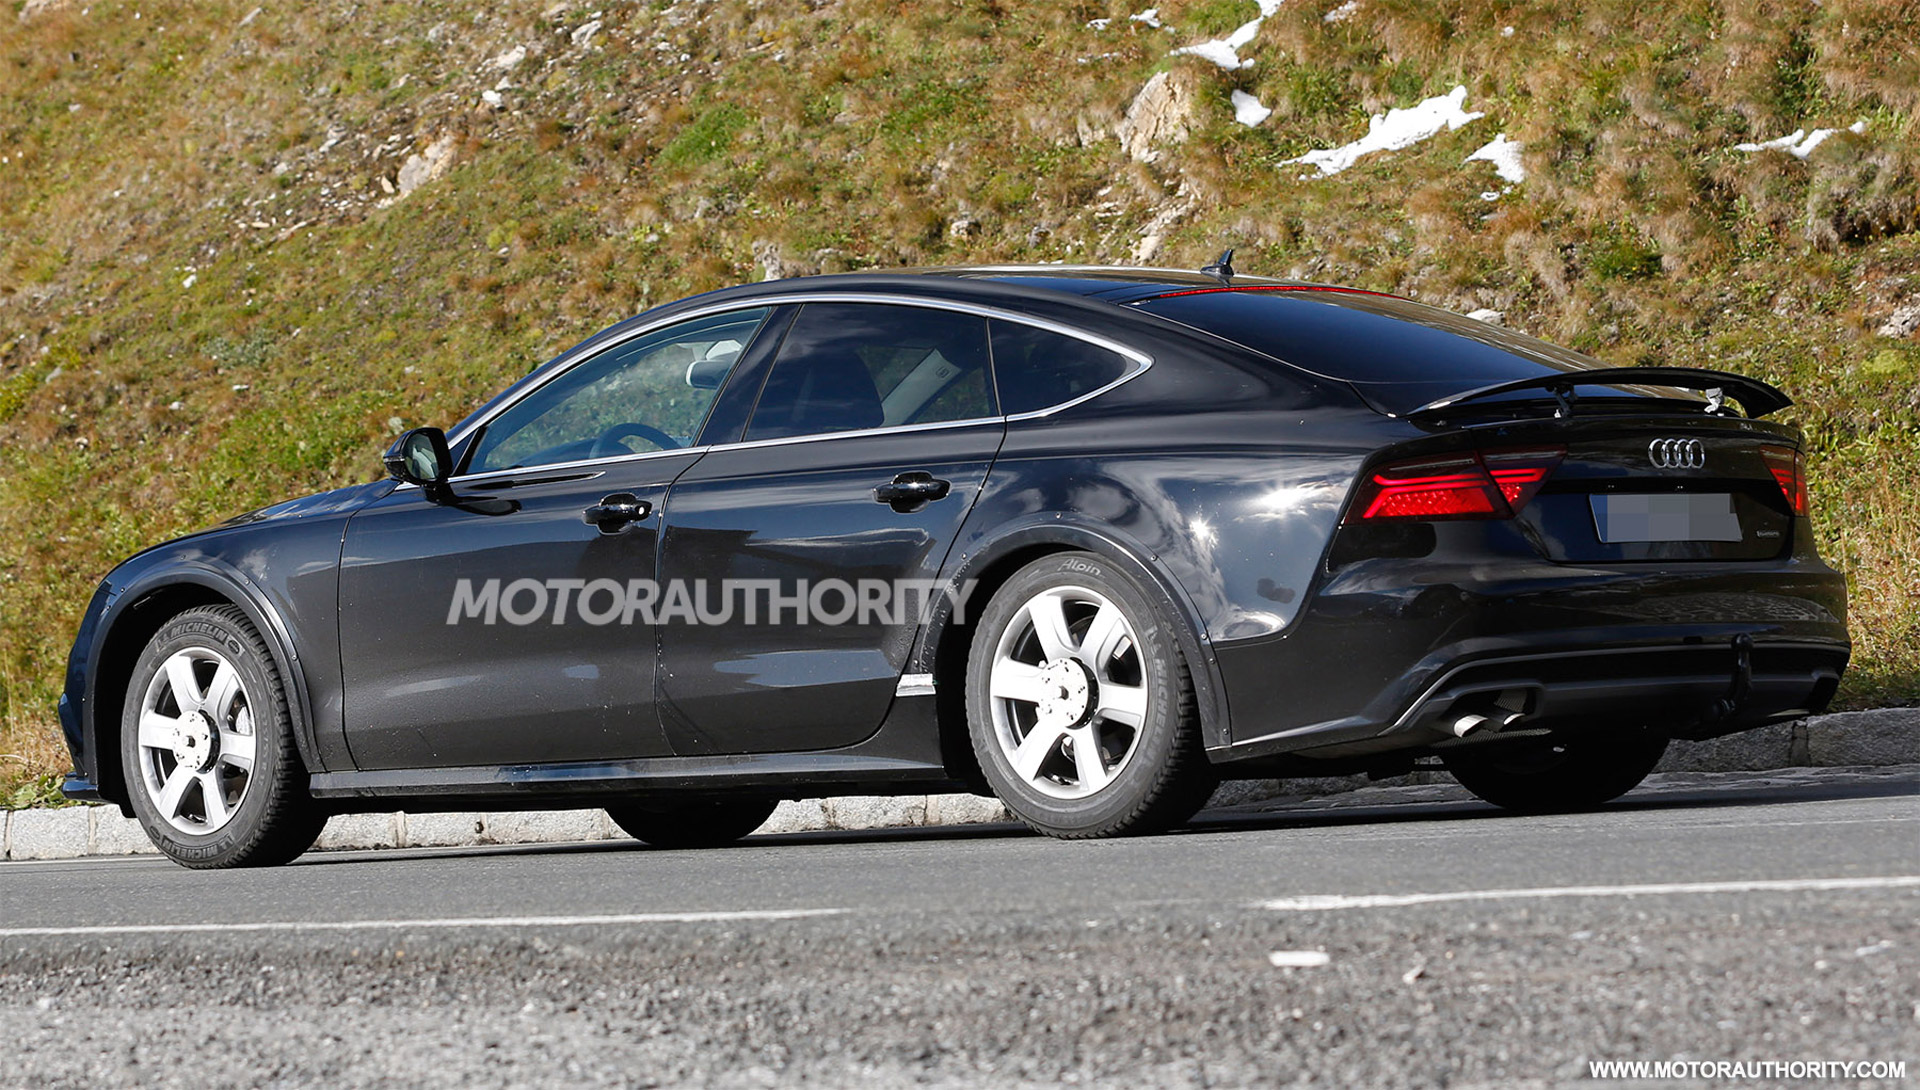 1092257 2019 Audi A7 Spy Shots on chevrolet muscle